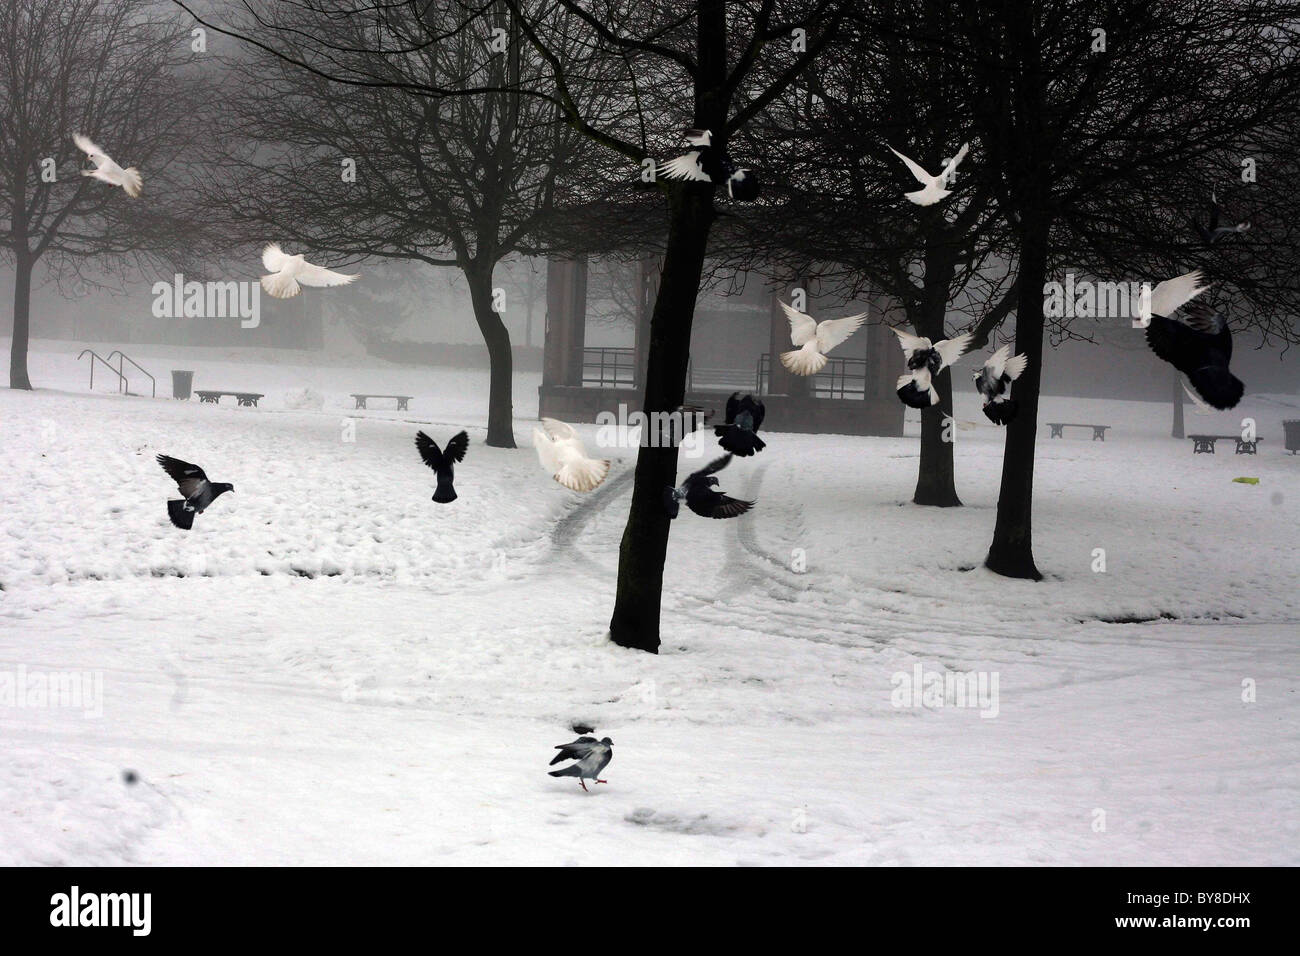 Snow and birds in South Park , Macclesfield - Stock Image